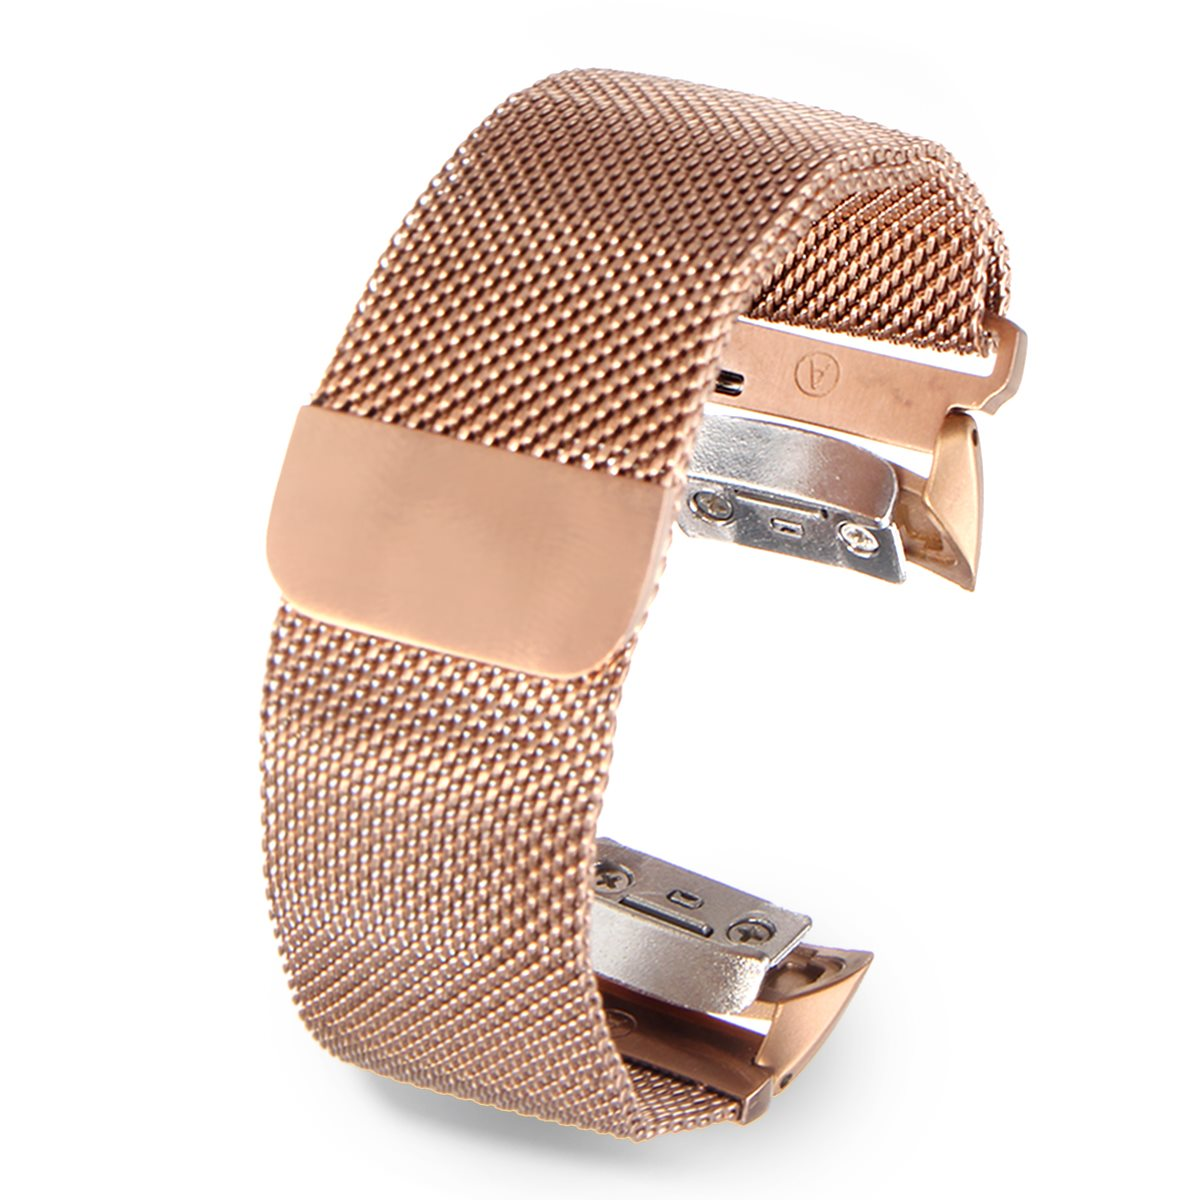 Magnetic Closure Milanese Loop Watchband Stainless Steel Classic Replacement Wrist Strap For/Samsung/galaxy/gear/Fit2/SM-R360 5 colors magnetic closure clasp milanese loop watch band for samsung galaxy gear s2 classic stainless steel strap bracelet